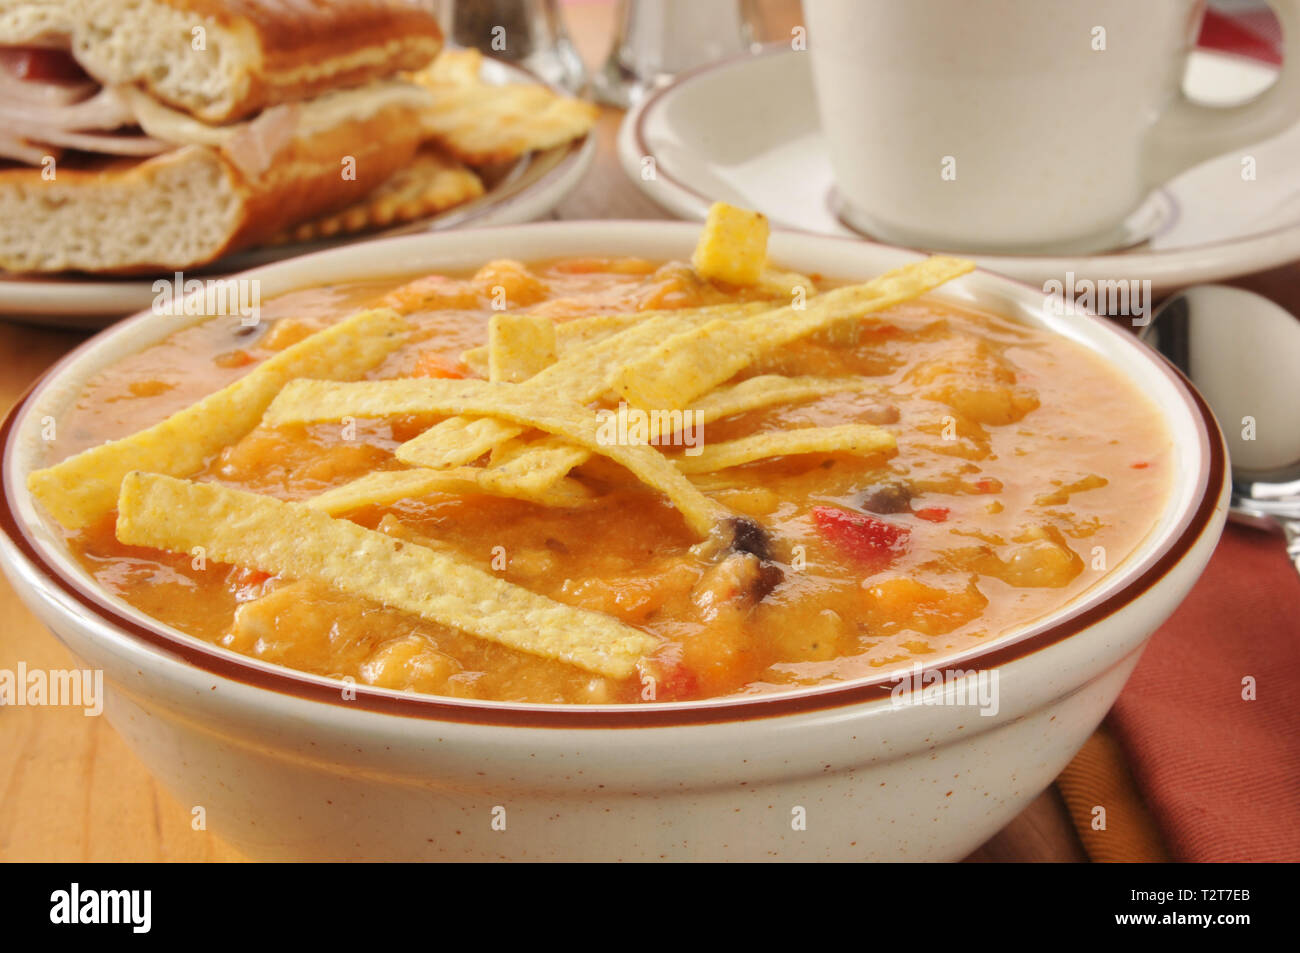 Closeup of a bowl of chicken tortilla soup and a sandwich - Stock Image